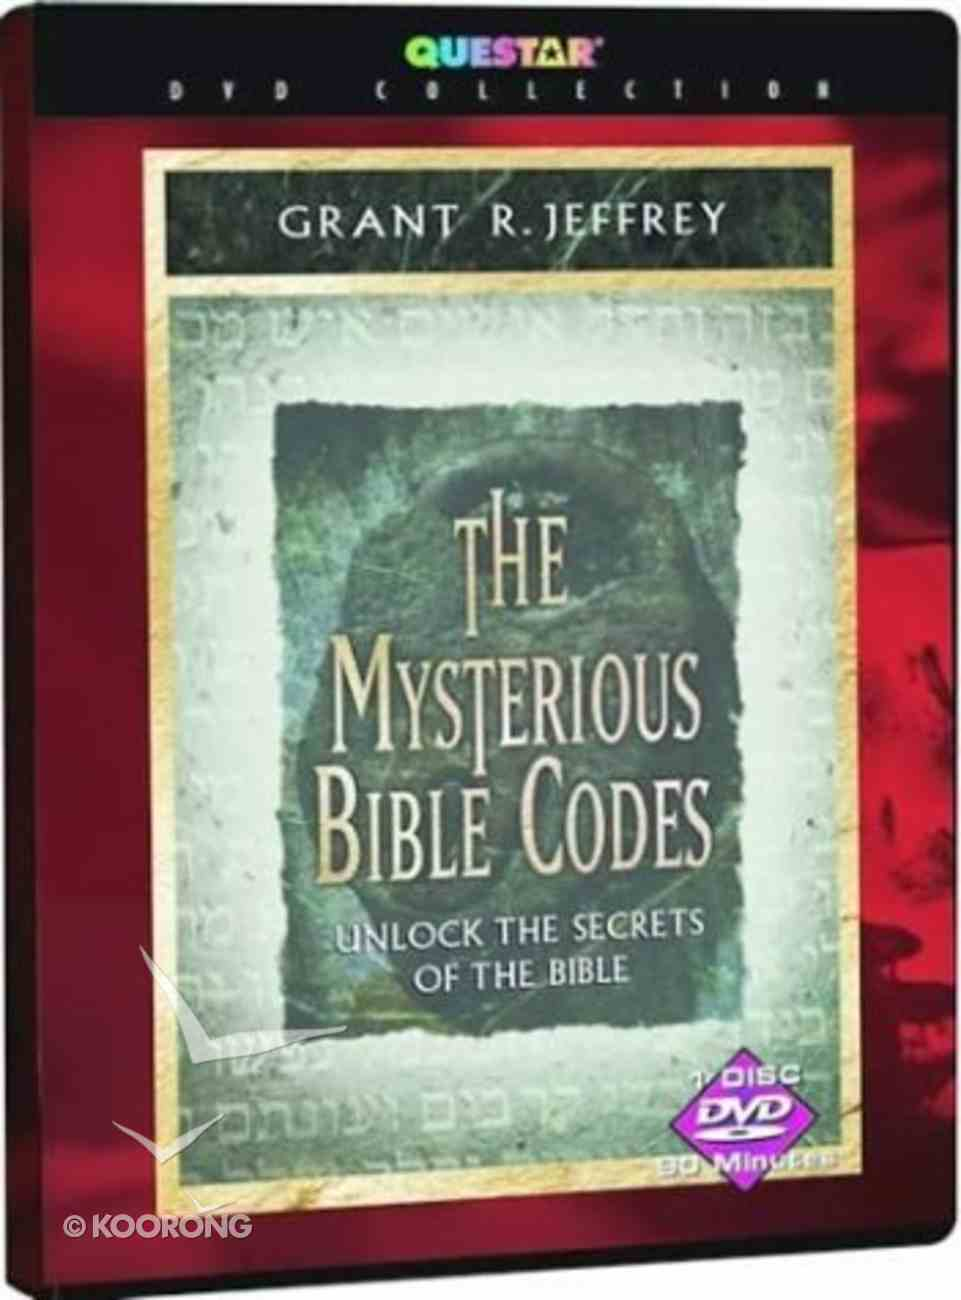 The Mysterious Bible Codes DVD